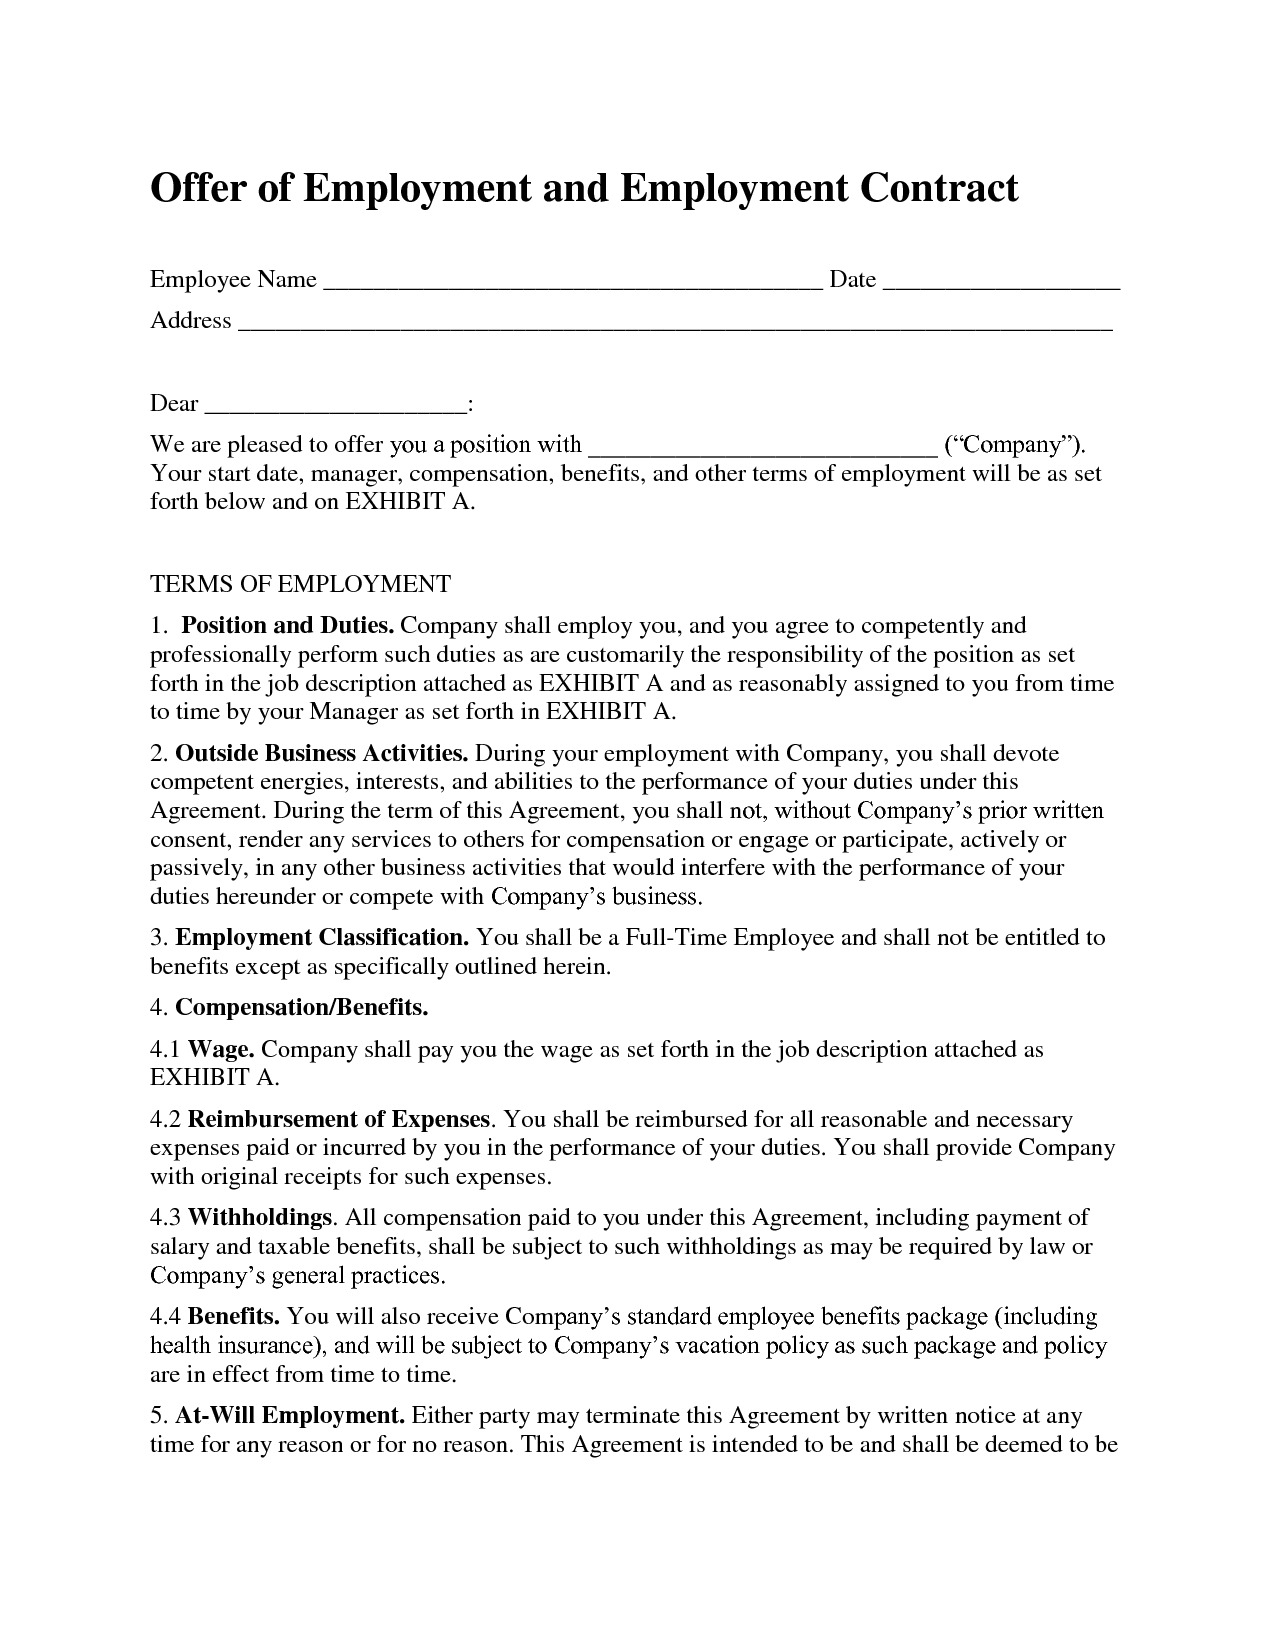 Free printable employment contract sample form generic for Part time employment contract template free